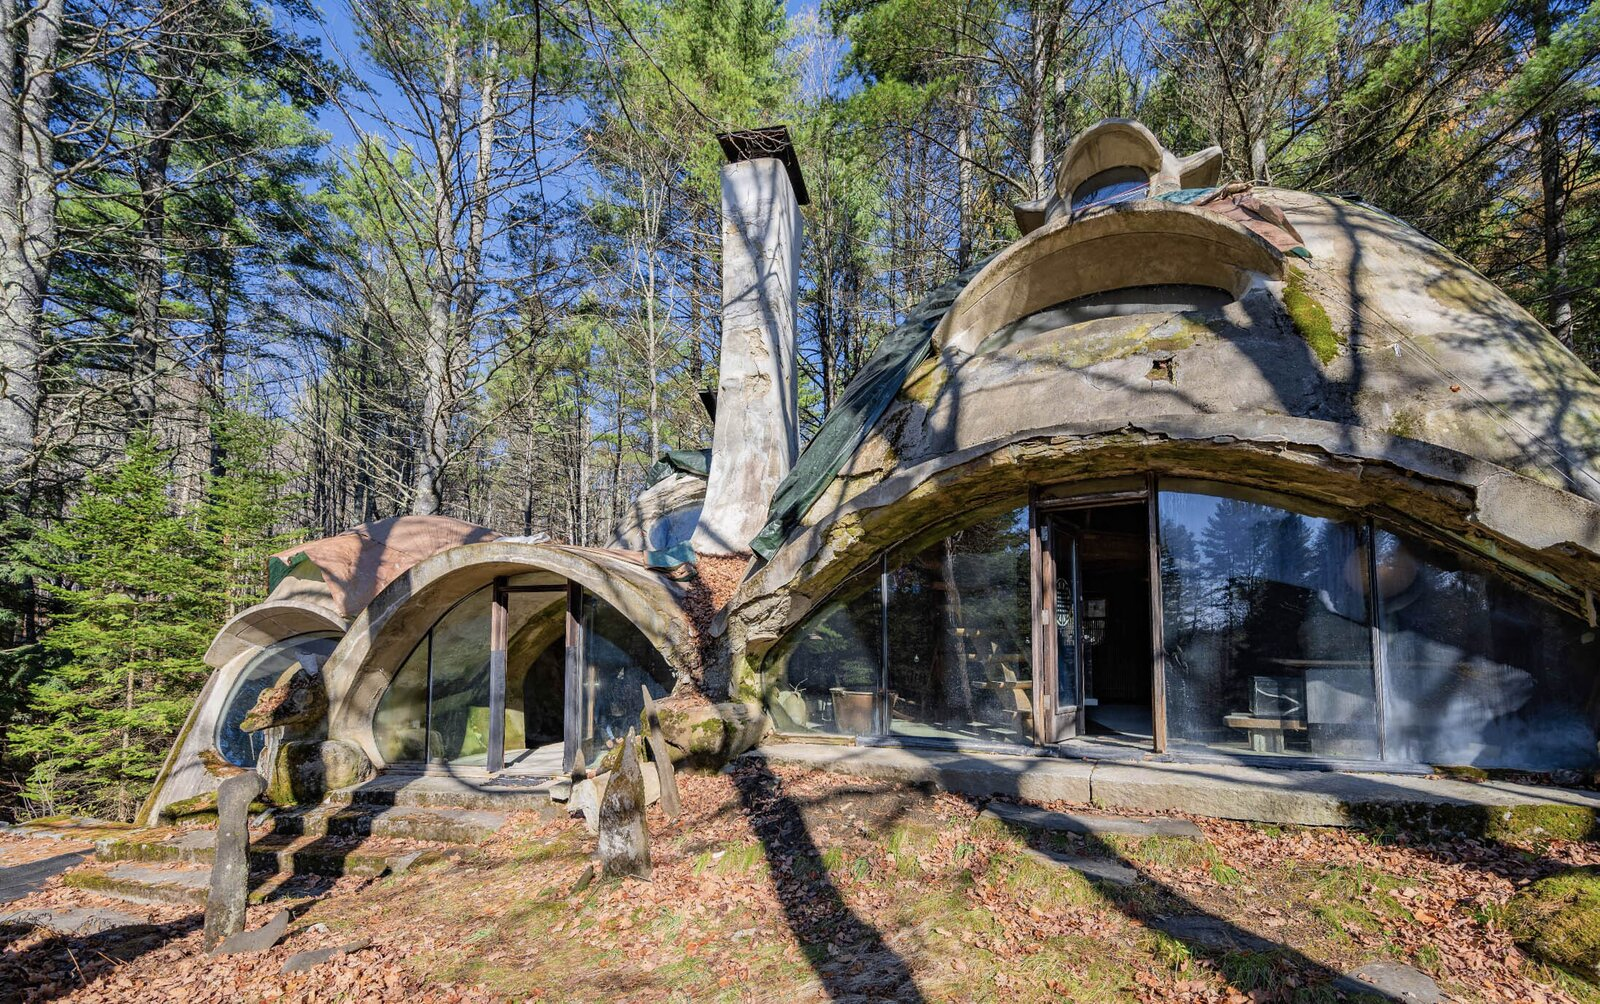 Photo 1 of 12 in Asking $220K, an Architect's Handcrafted Earthen Home Seeks a Visionary Buyer in Vermont